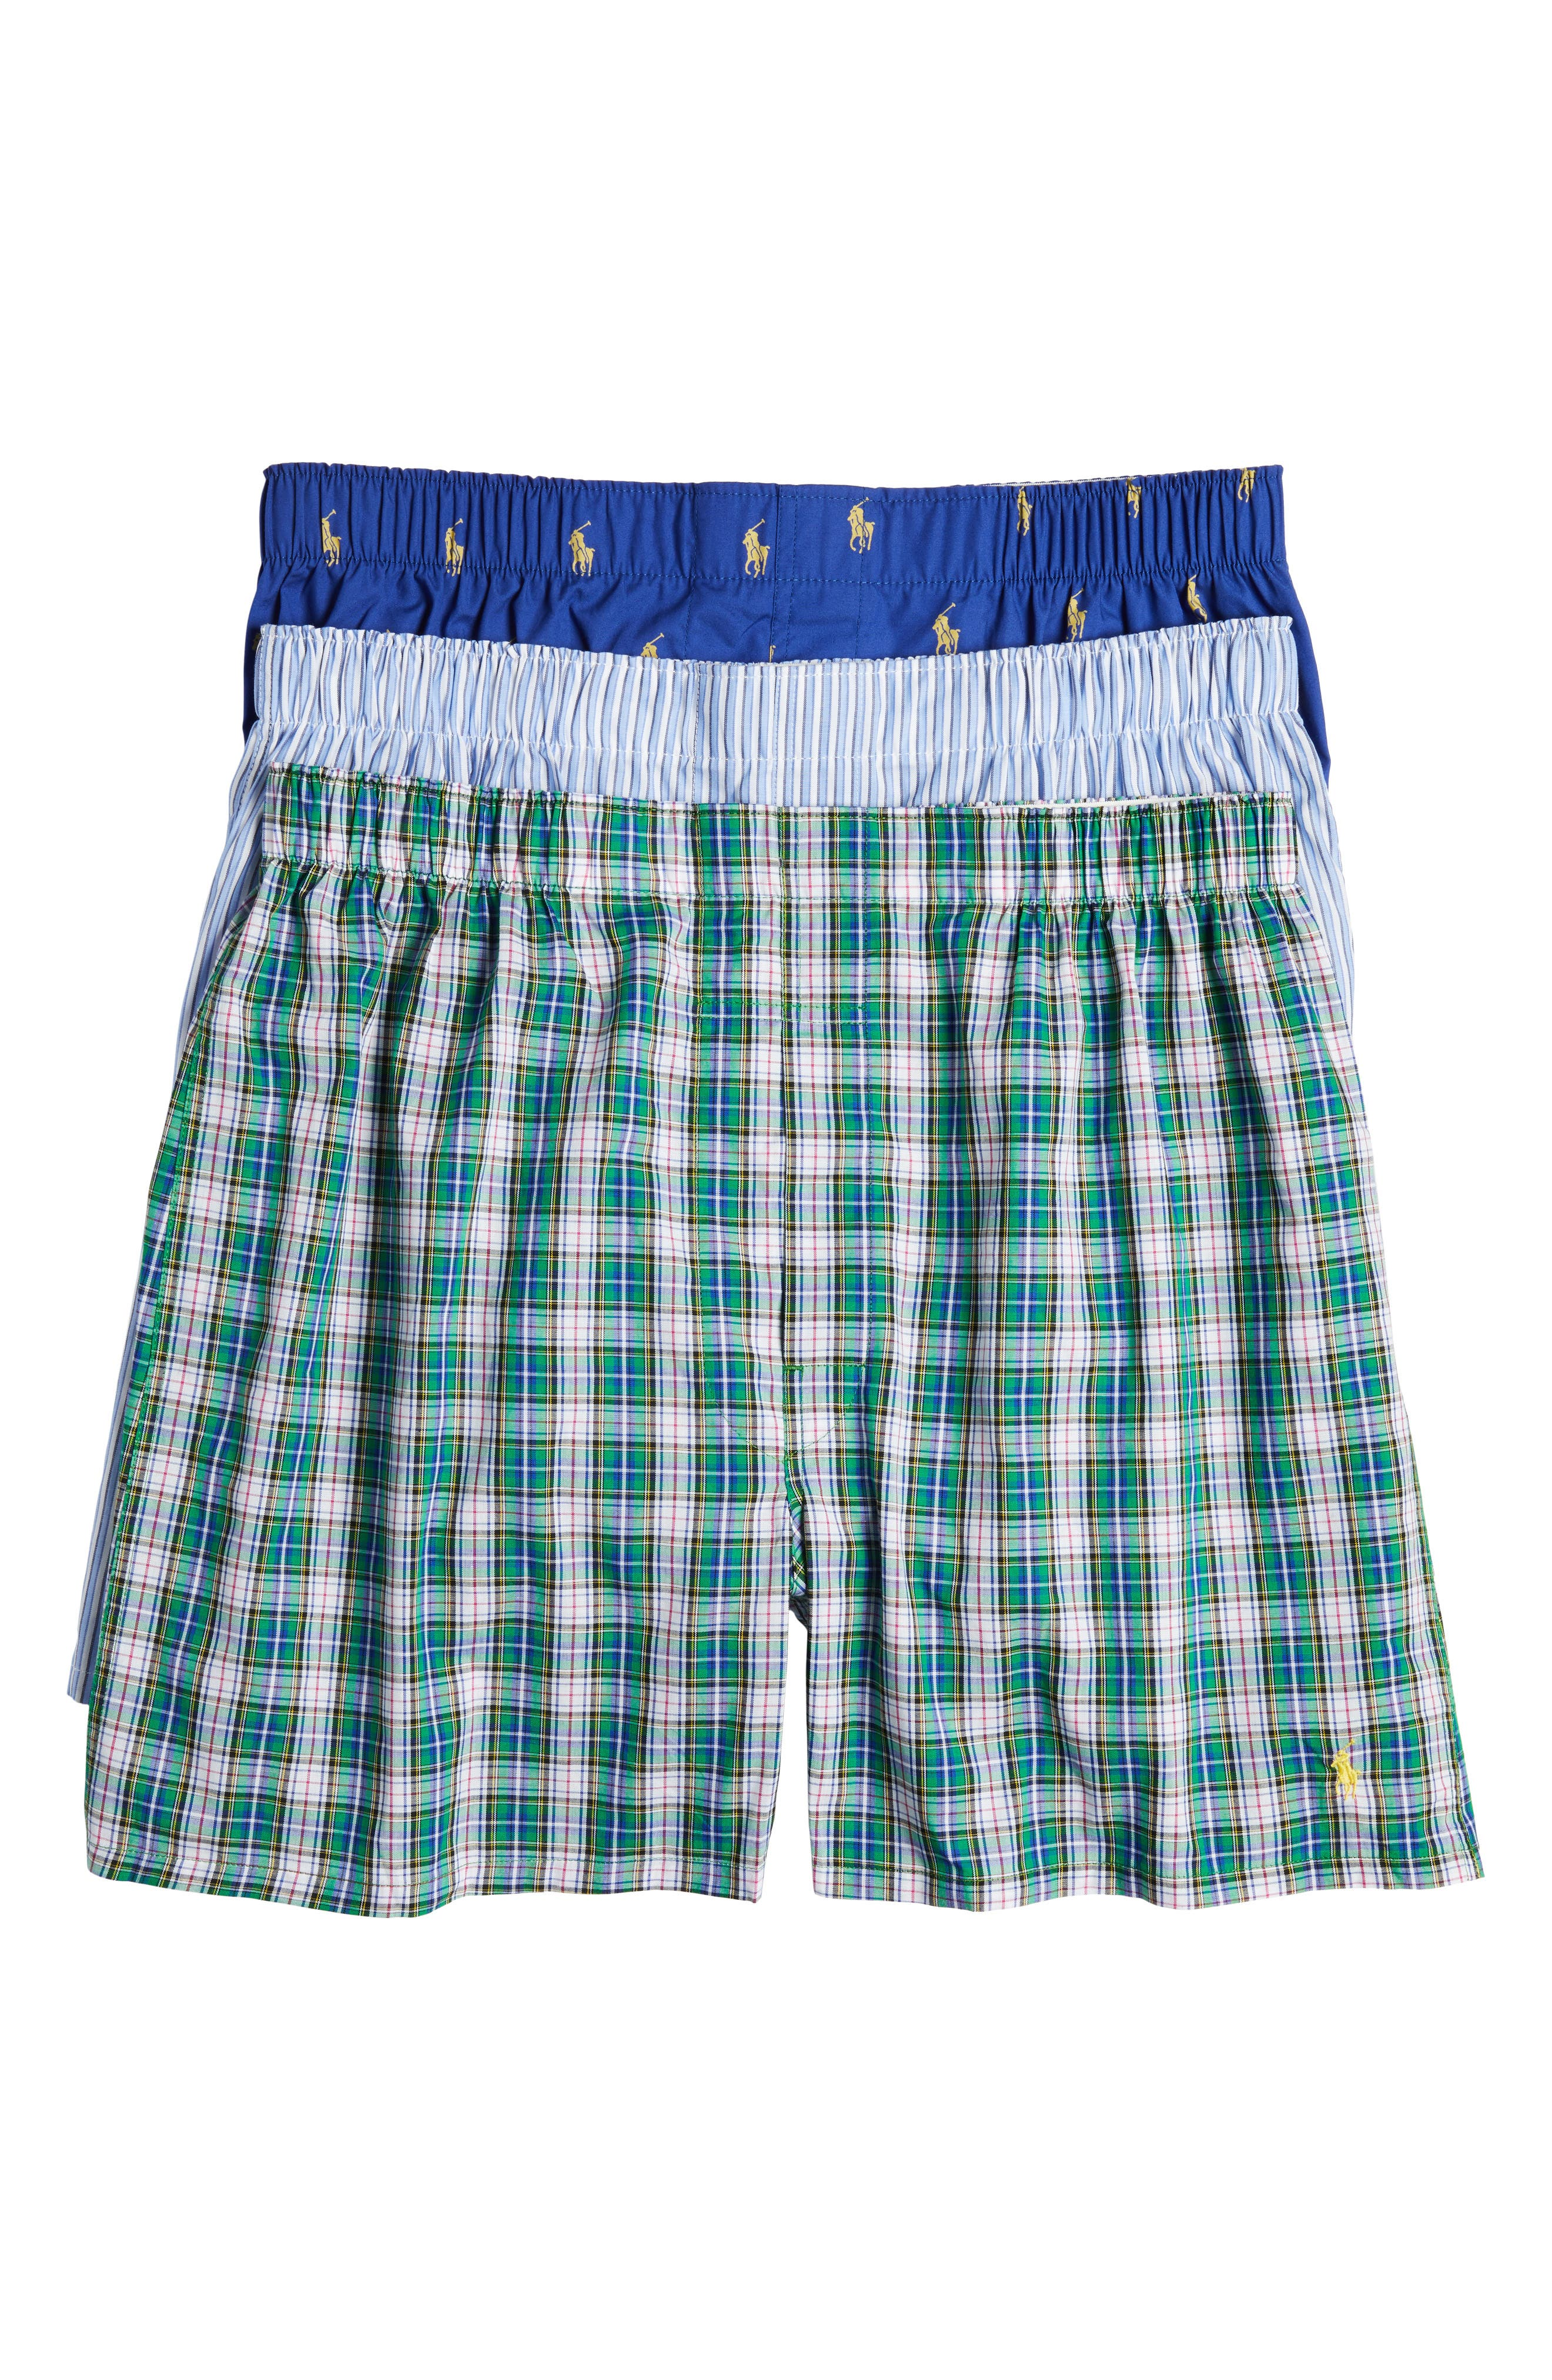 3-Pack Cotton Boxers,                         Main,                         color, Bright Navy/ Blue/ Green